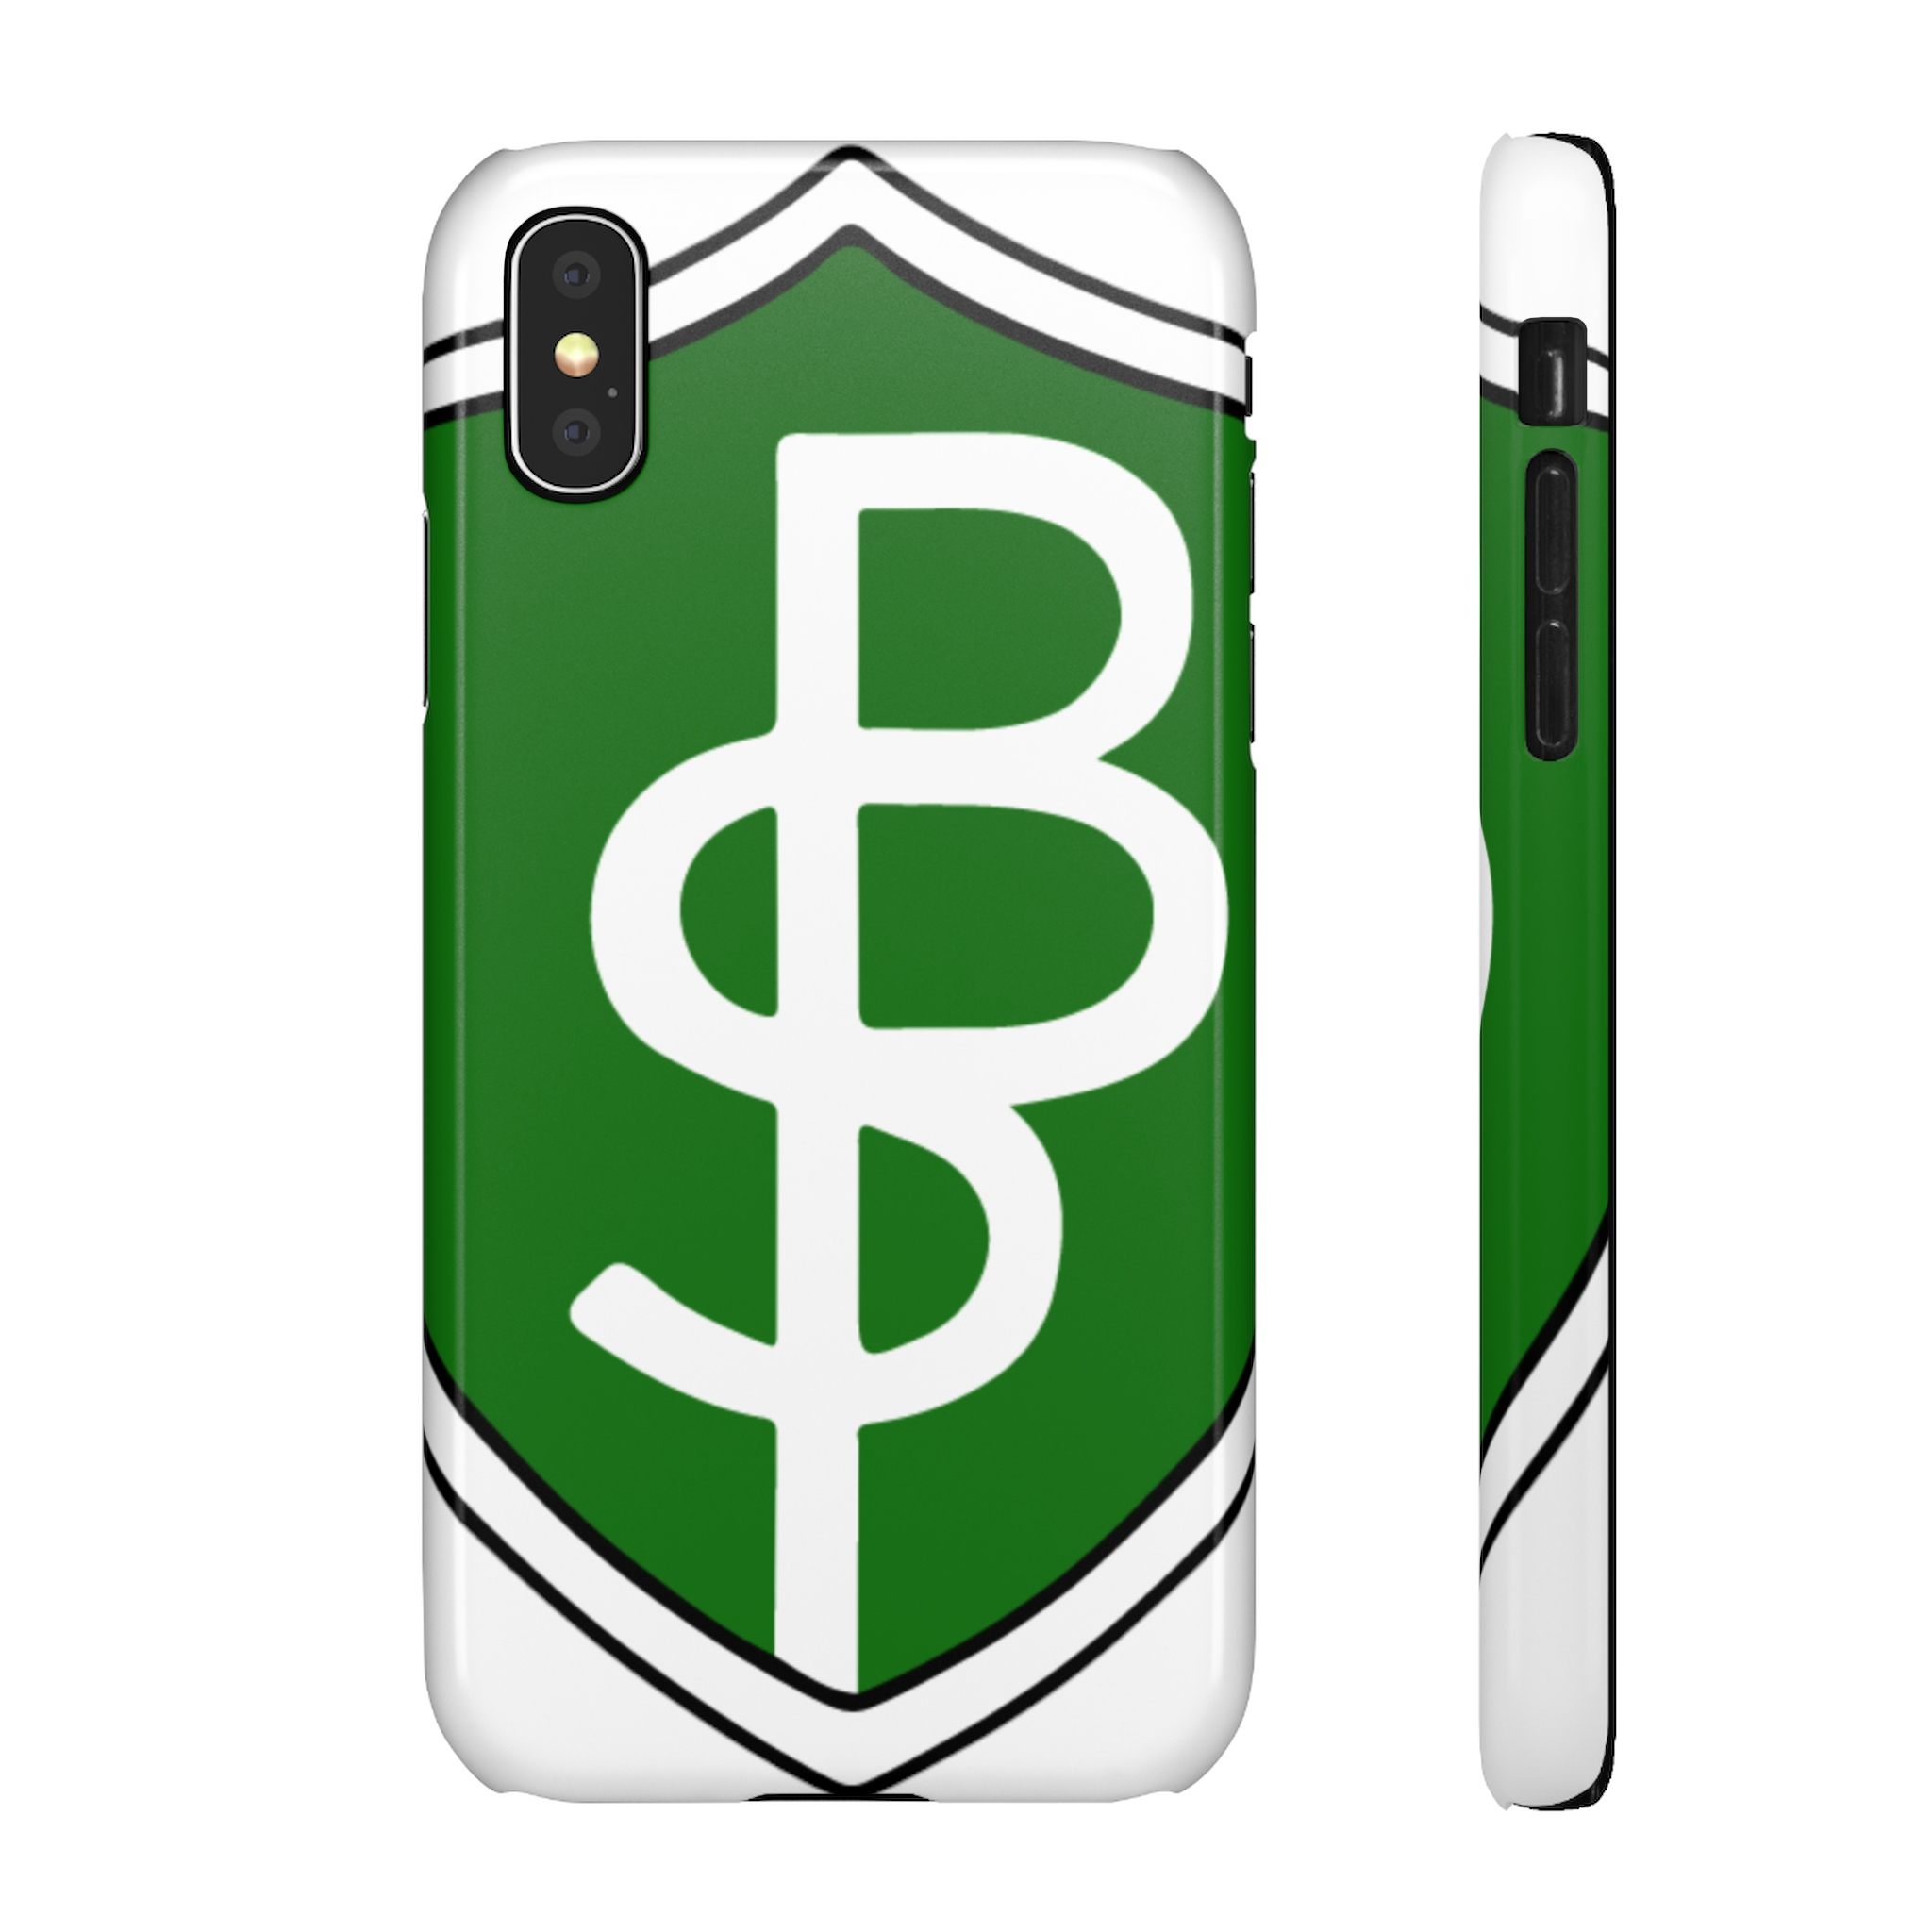 Buissness™ Cases